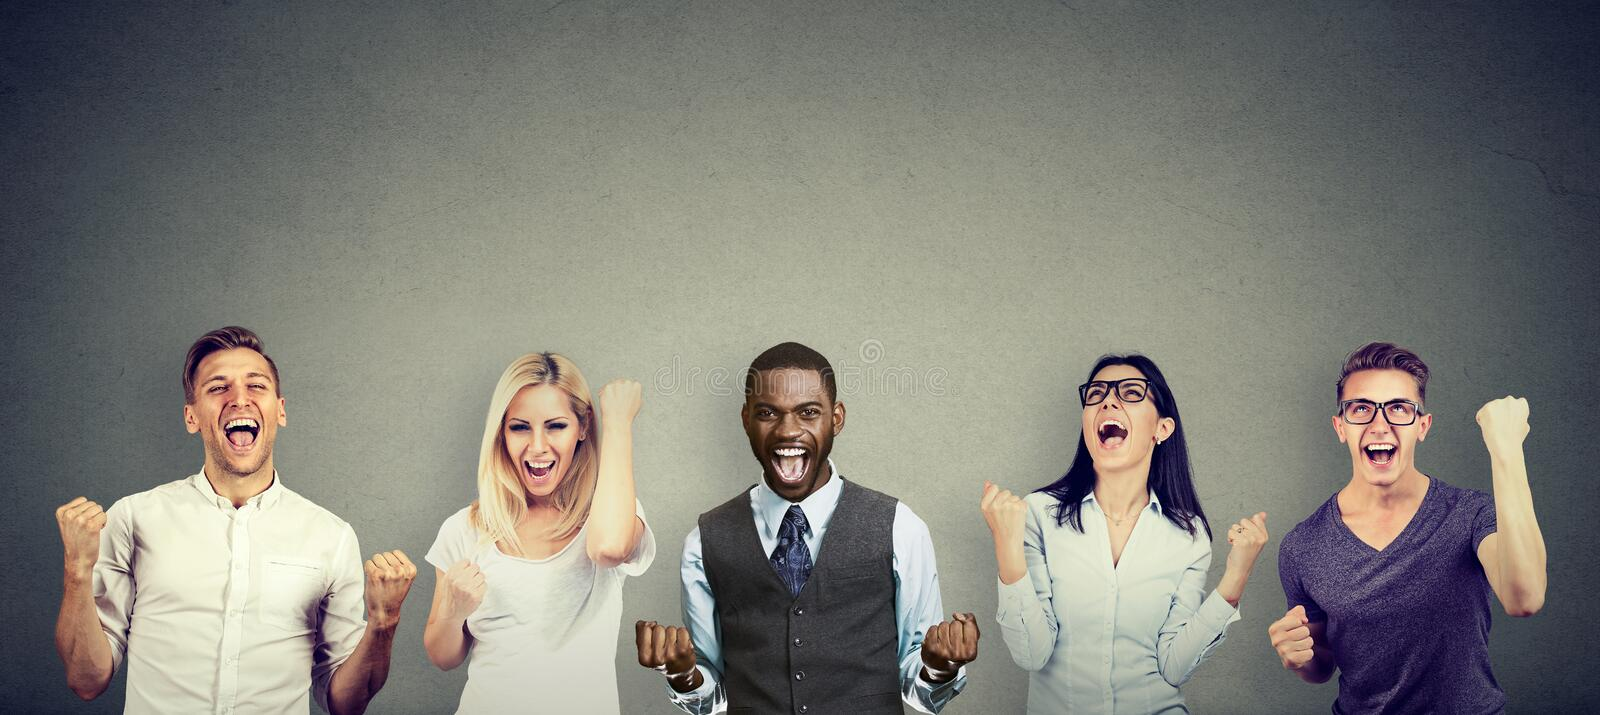 Successful young people men and women are celebrating a victory stock image